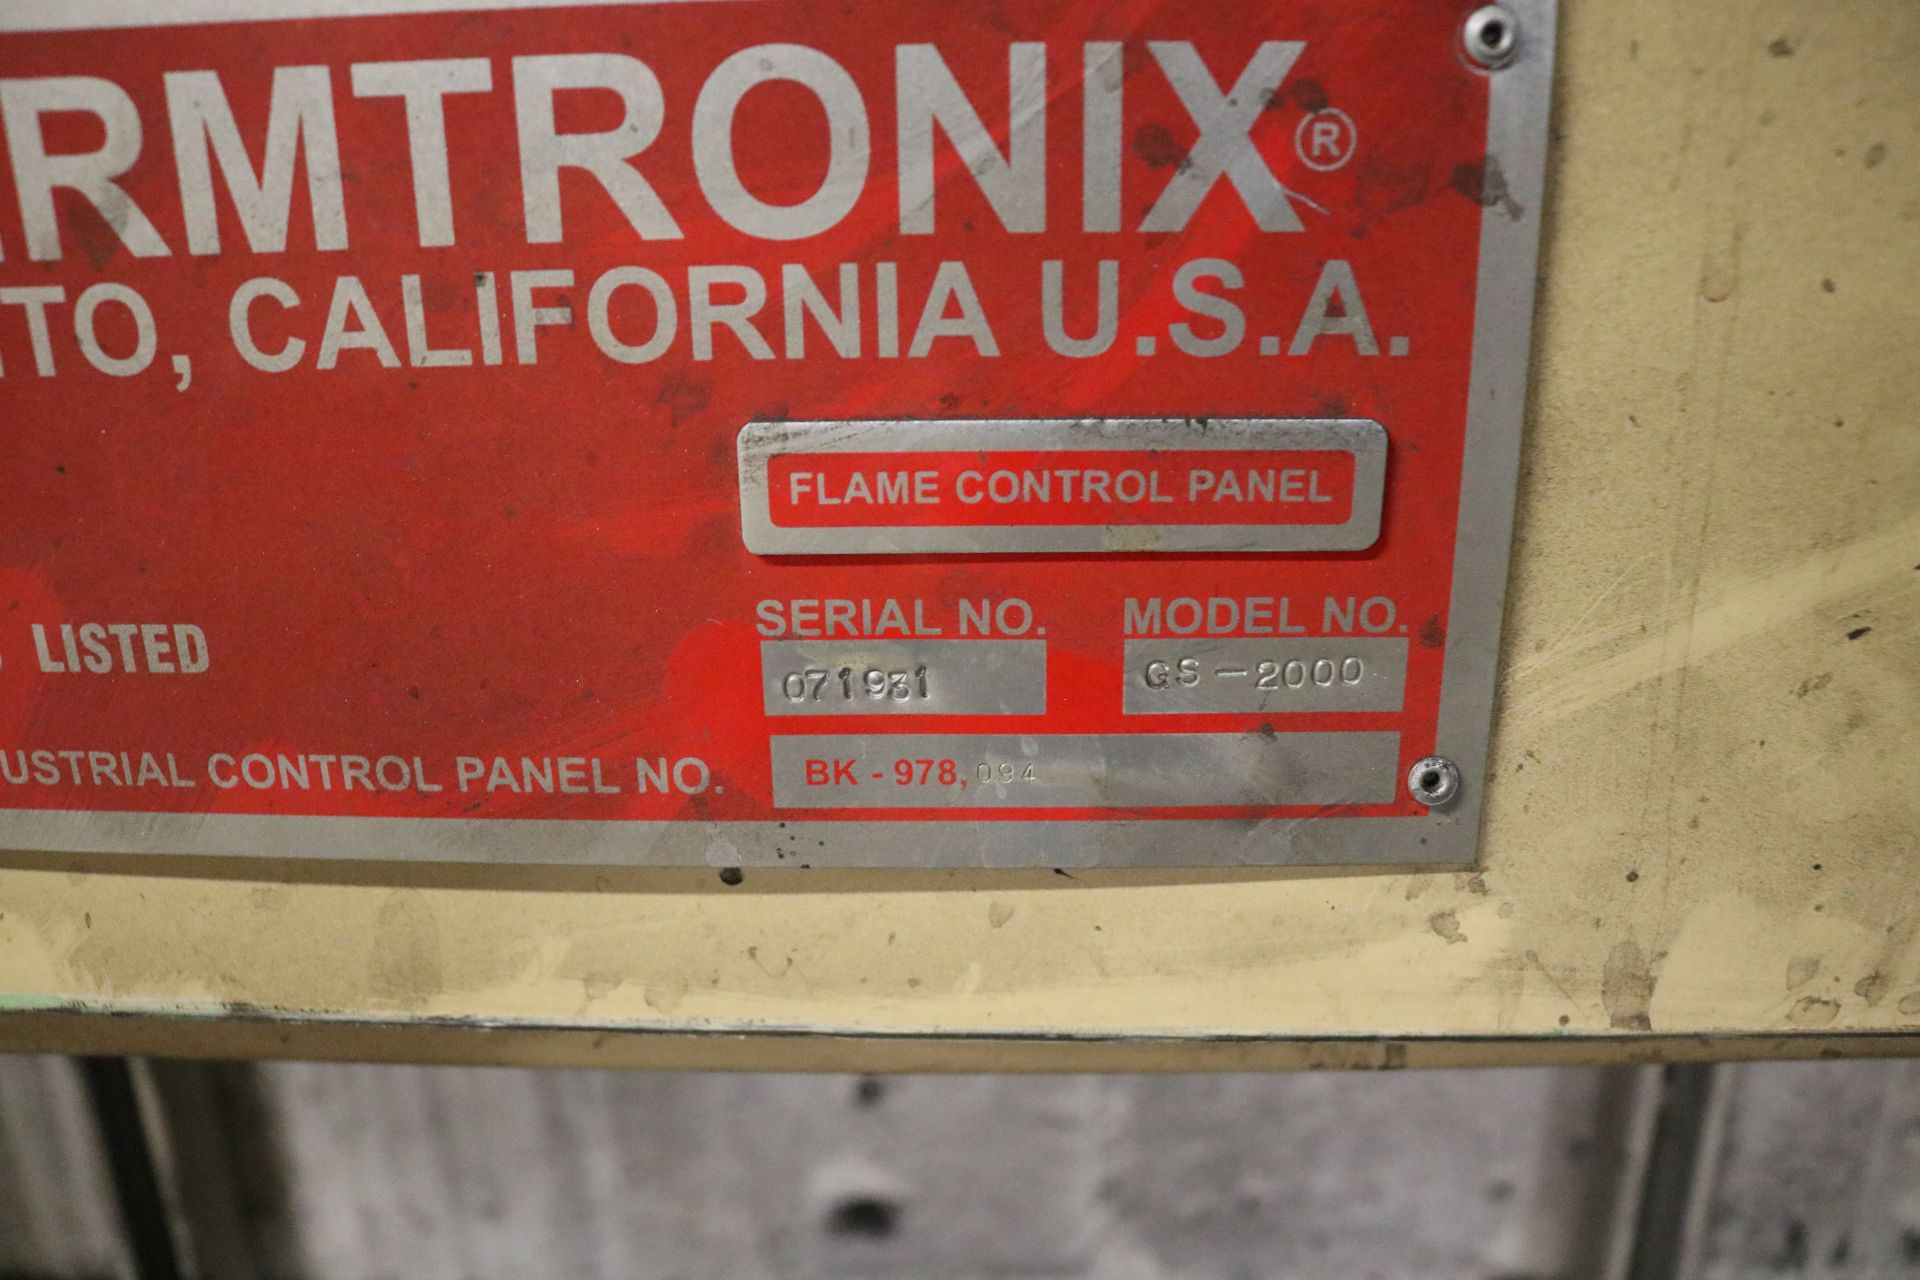 Lot 49 - 2007 THERMTRONIX MODEL GS2000 2000 LB GAS FIRED MELTING FURNACE, GAS SYSTEM AND CONTROLS, S/N